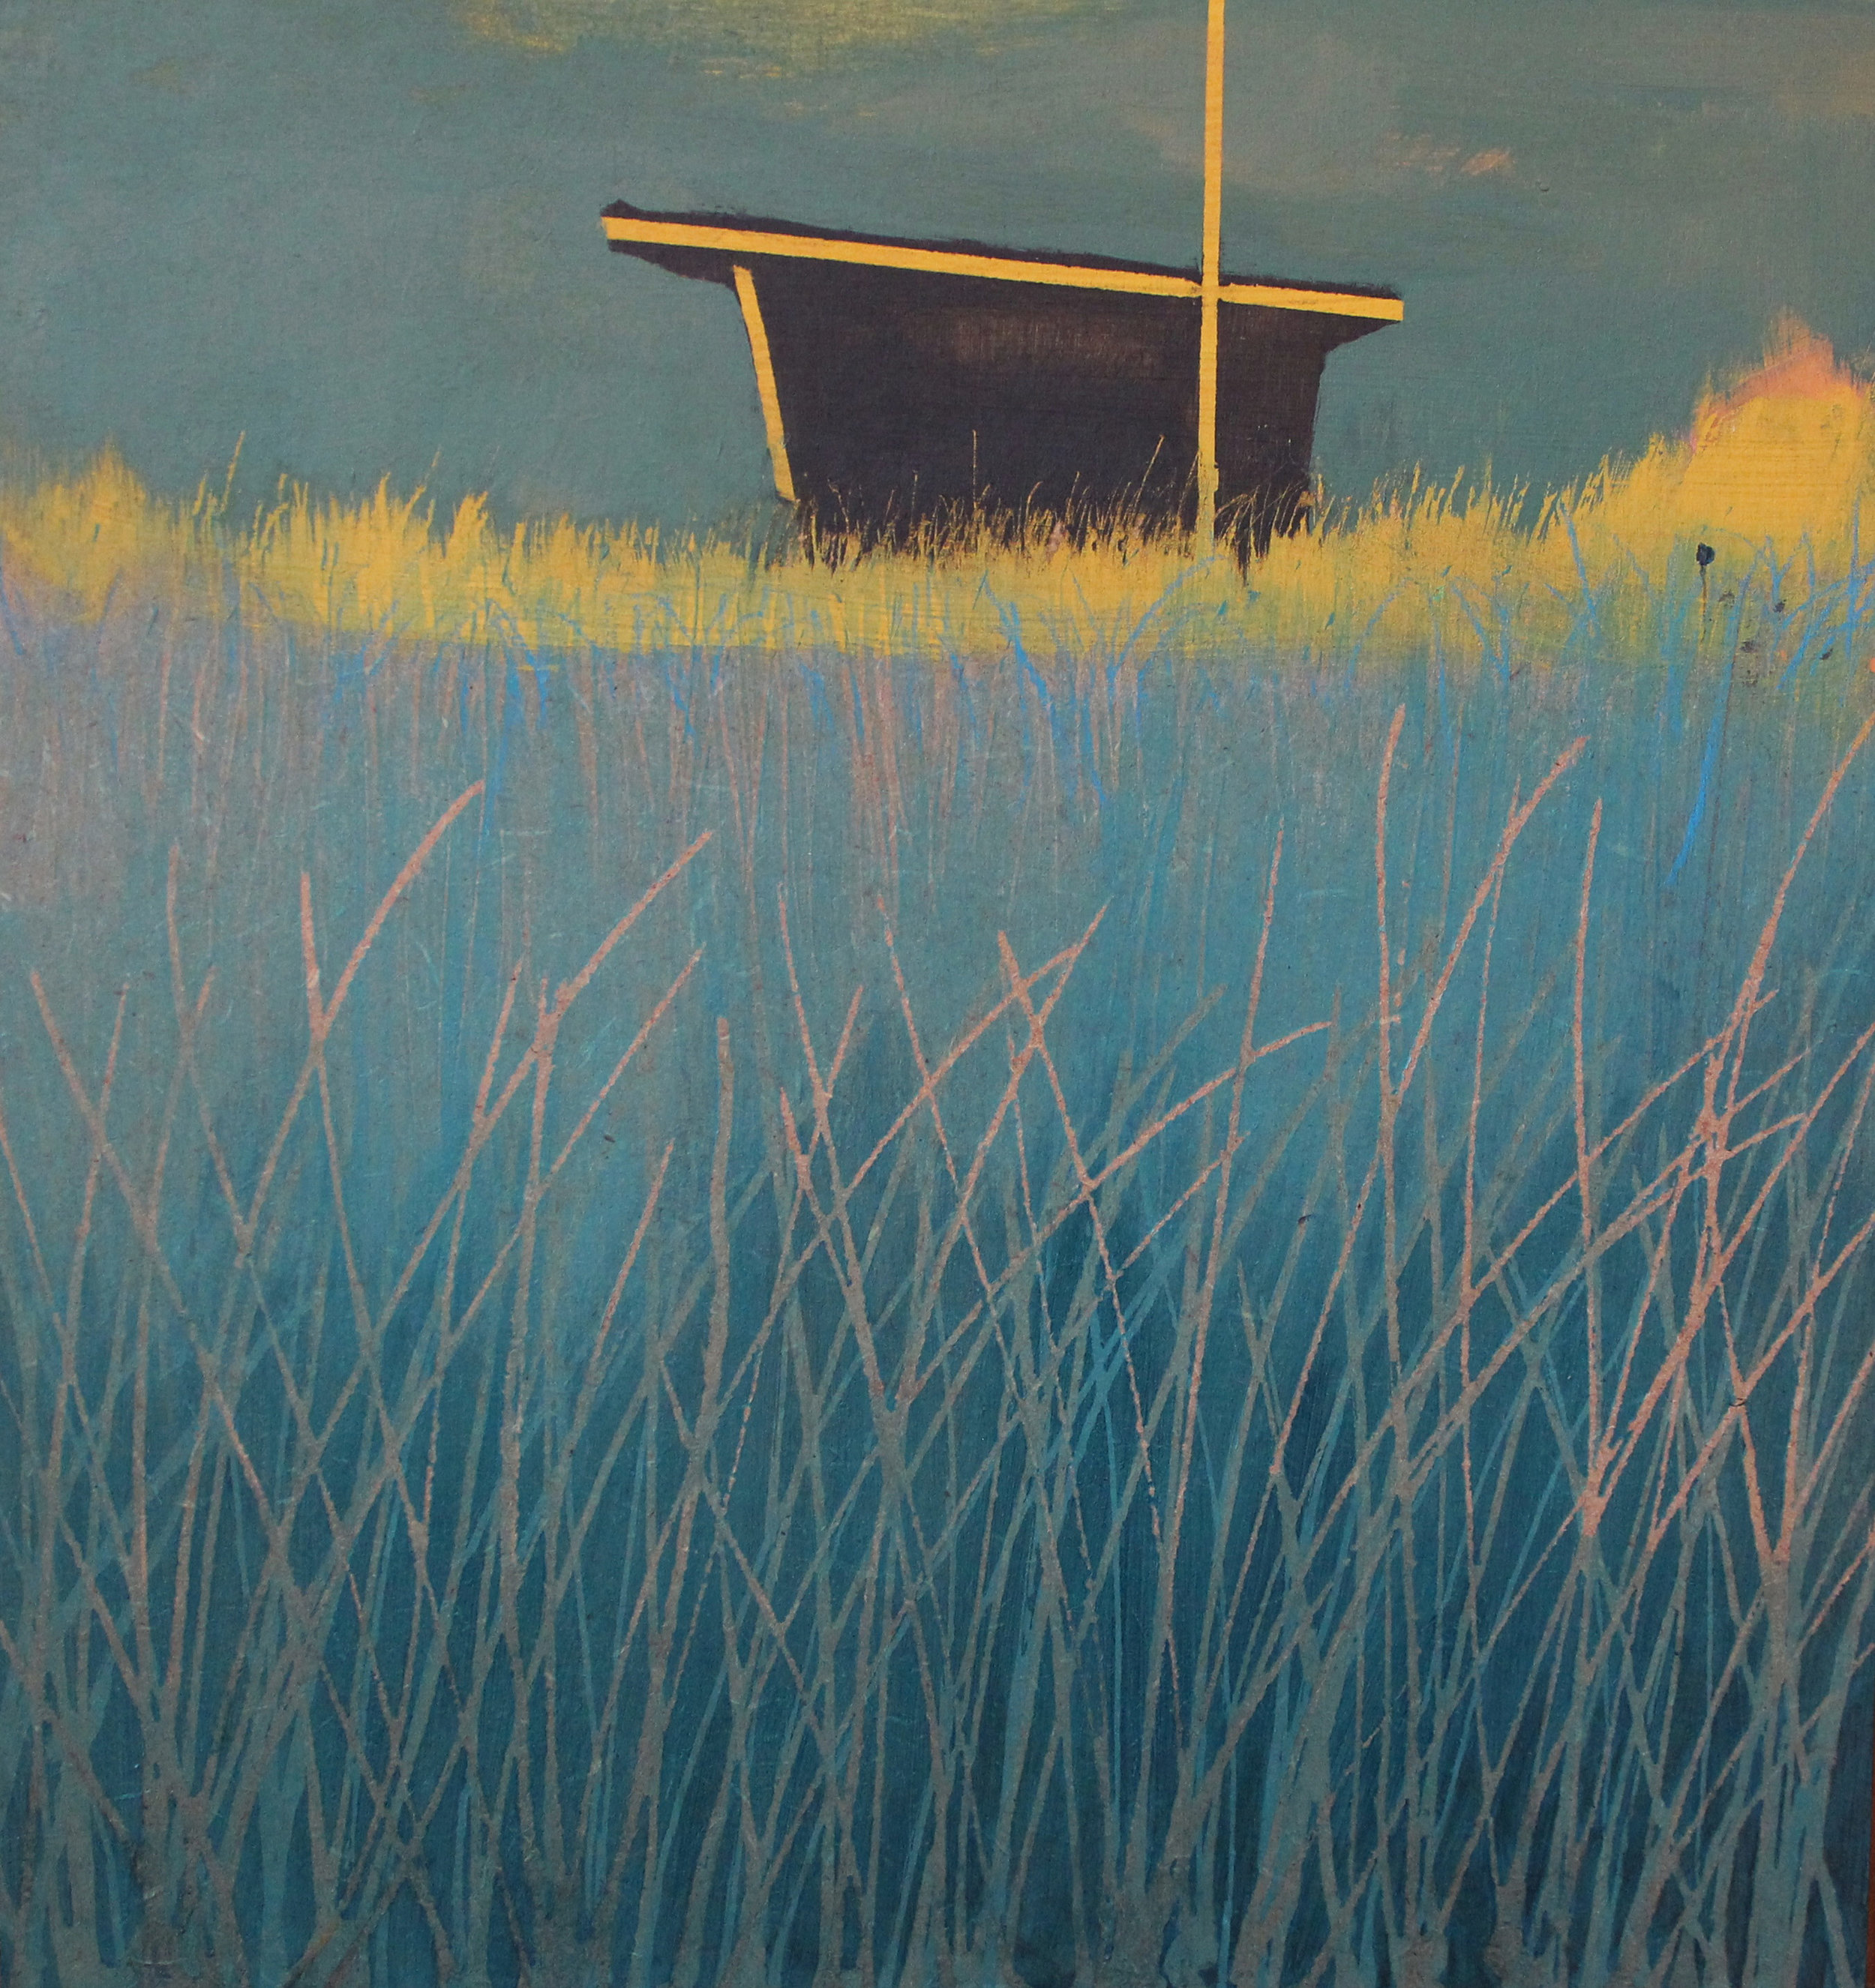 Break of sunlight, Gwithian lifeguard hut, 28x28 cm, acrylic on board, £sold.